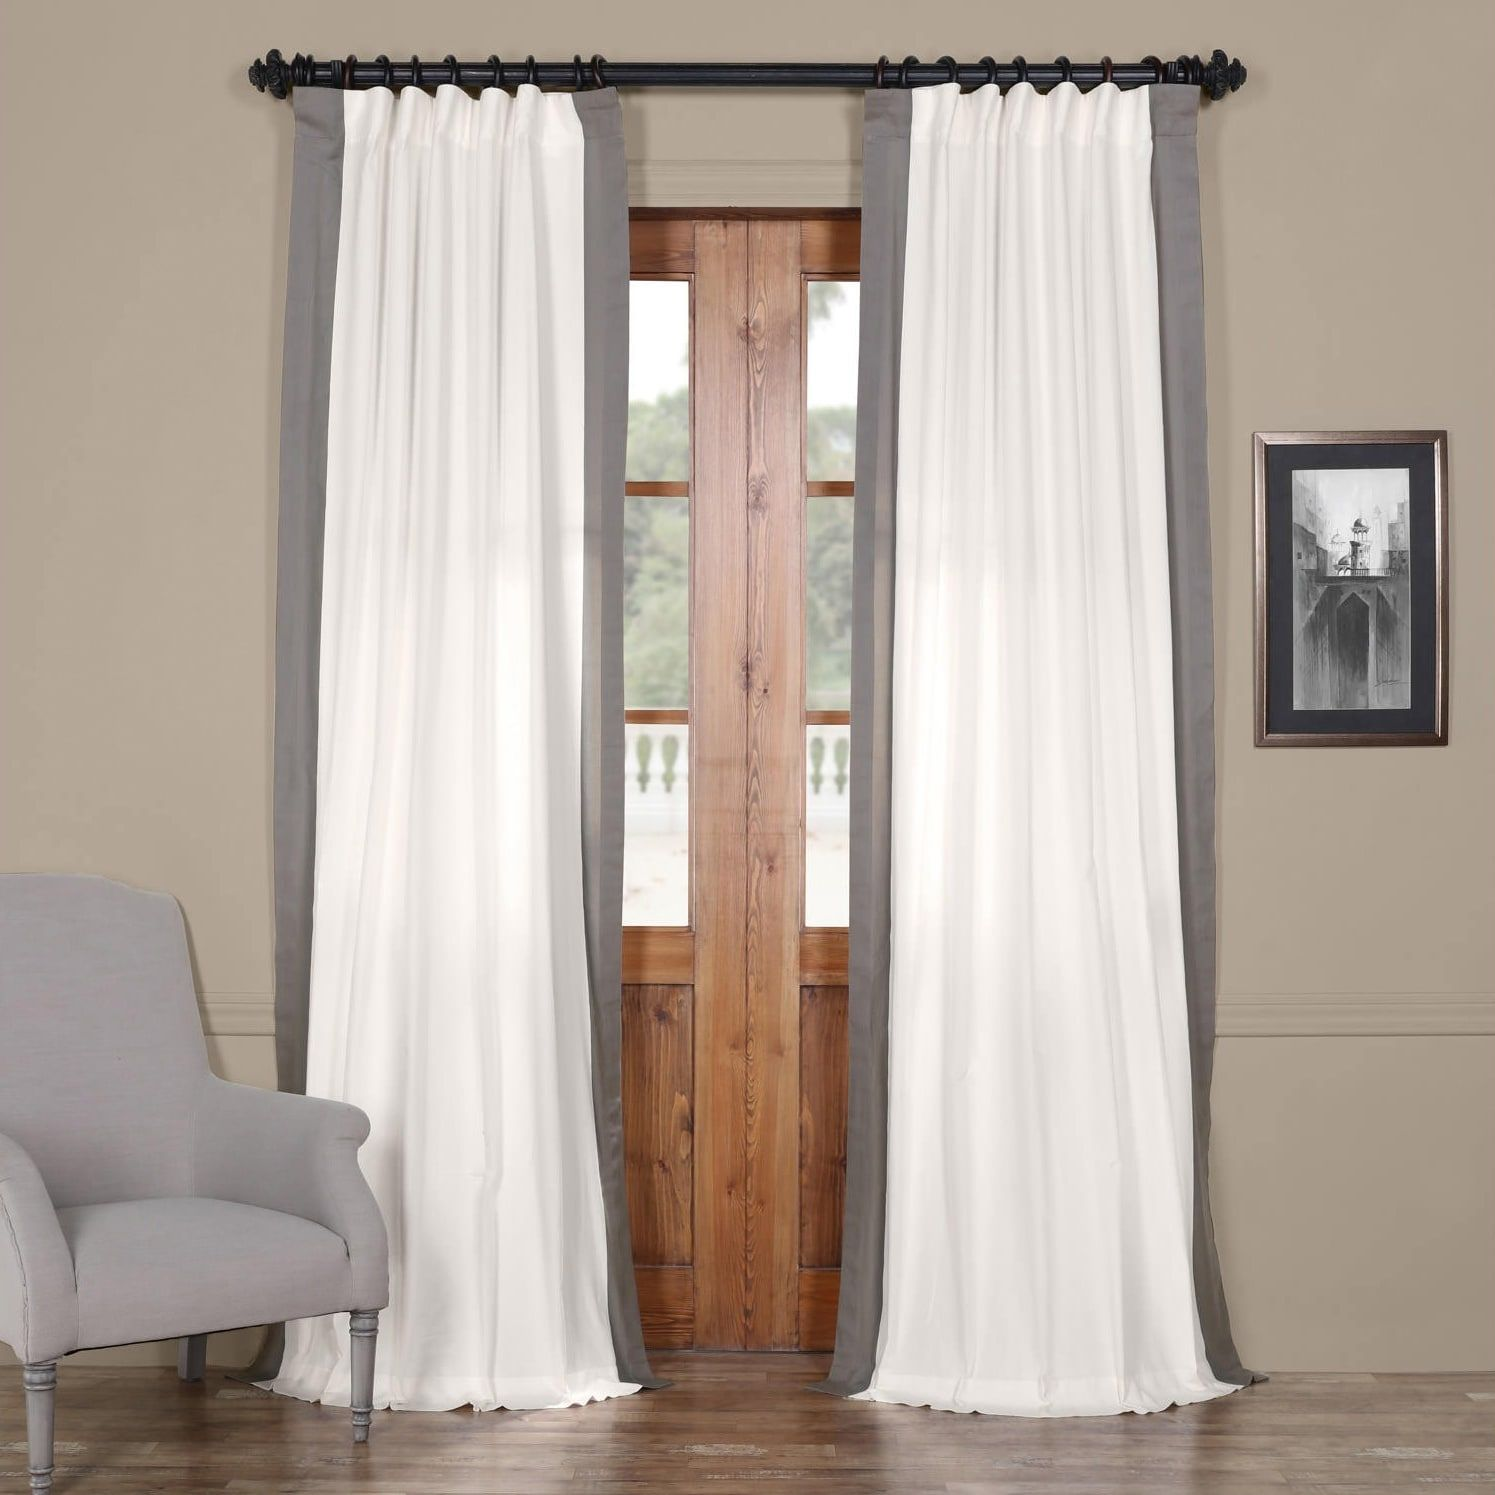 gray of inspirations bathroom less full drapes treatments white good curtains with for photos glittering size patterns overstock off com window ideas